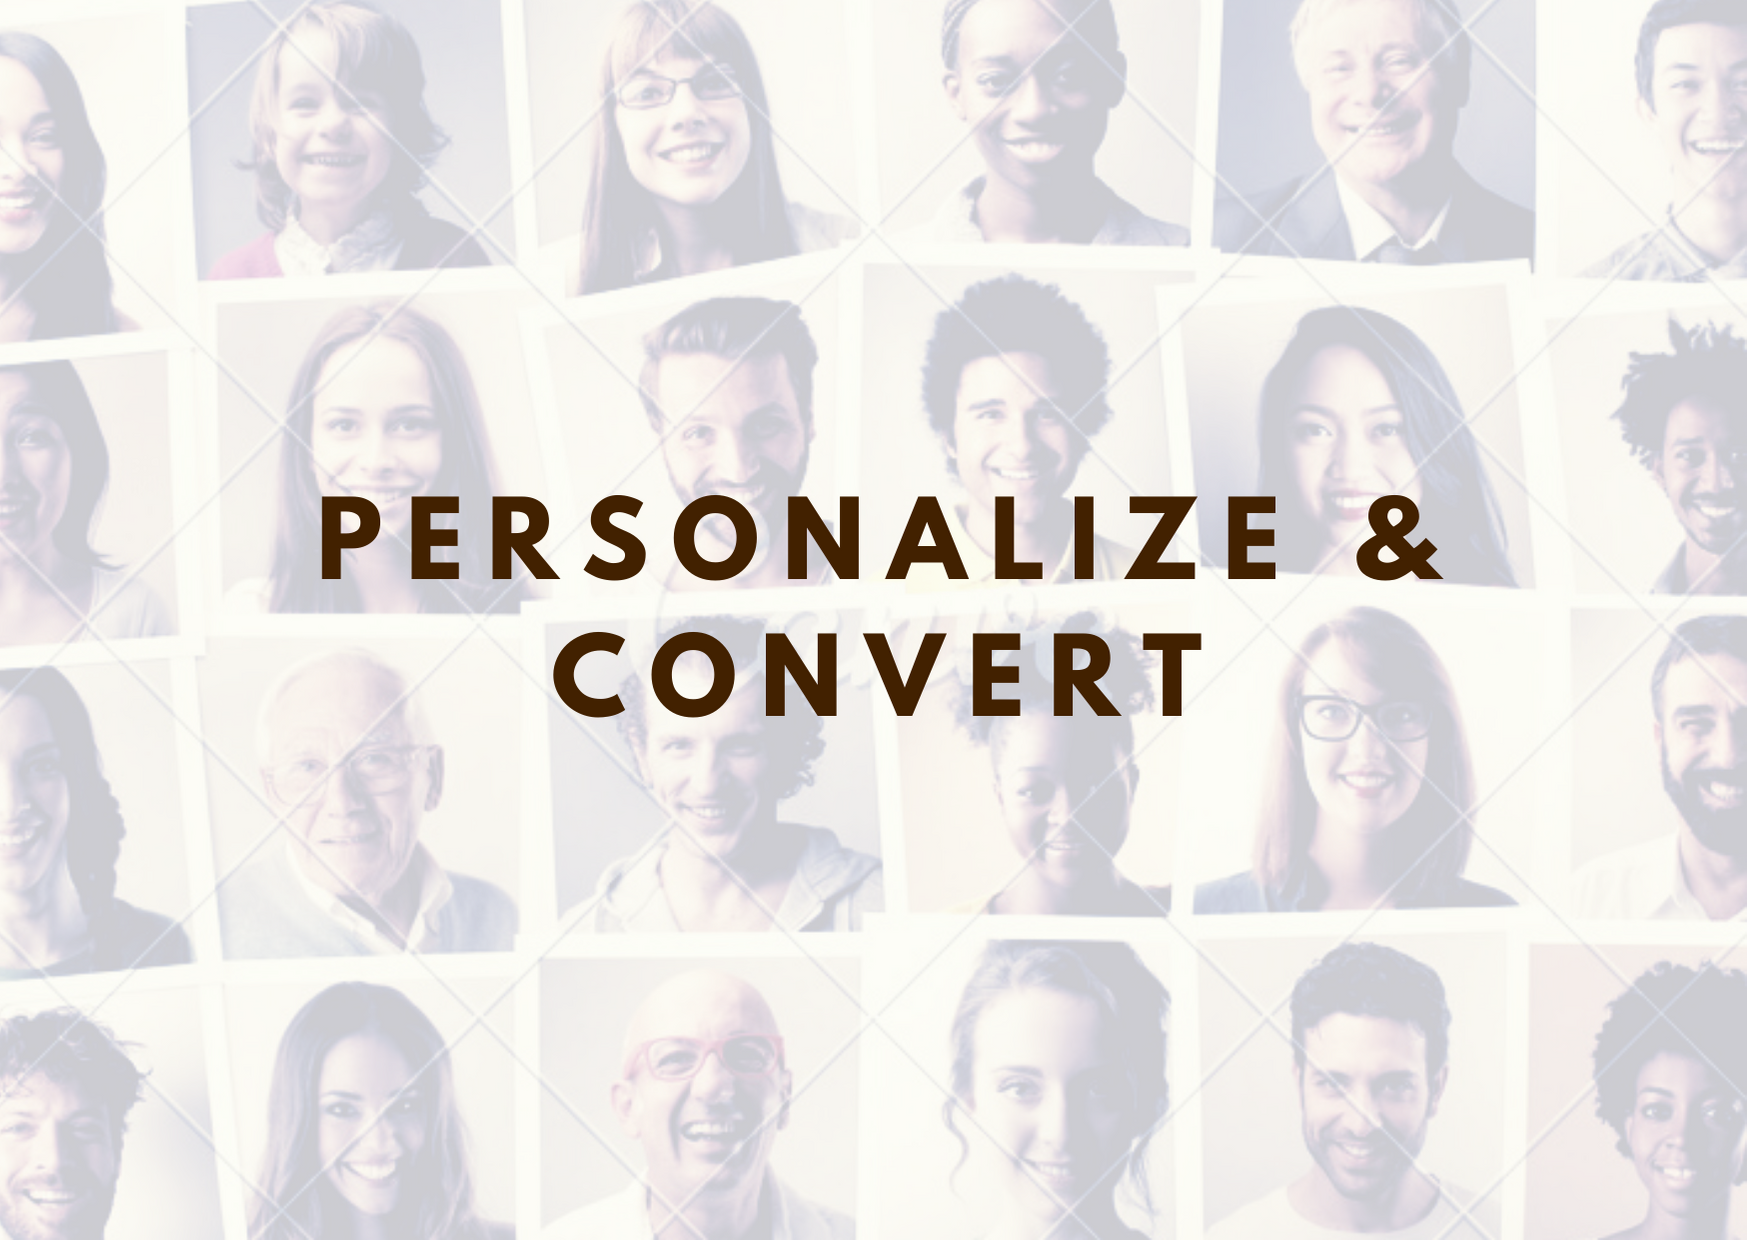 Advertising intelligence to create personalized ads